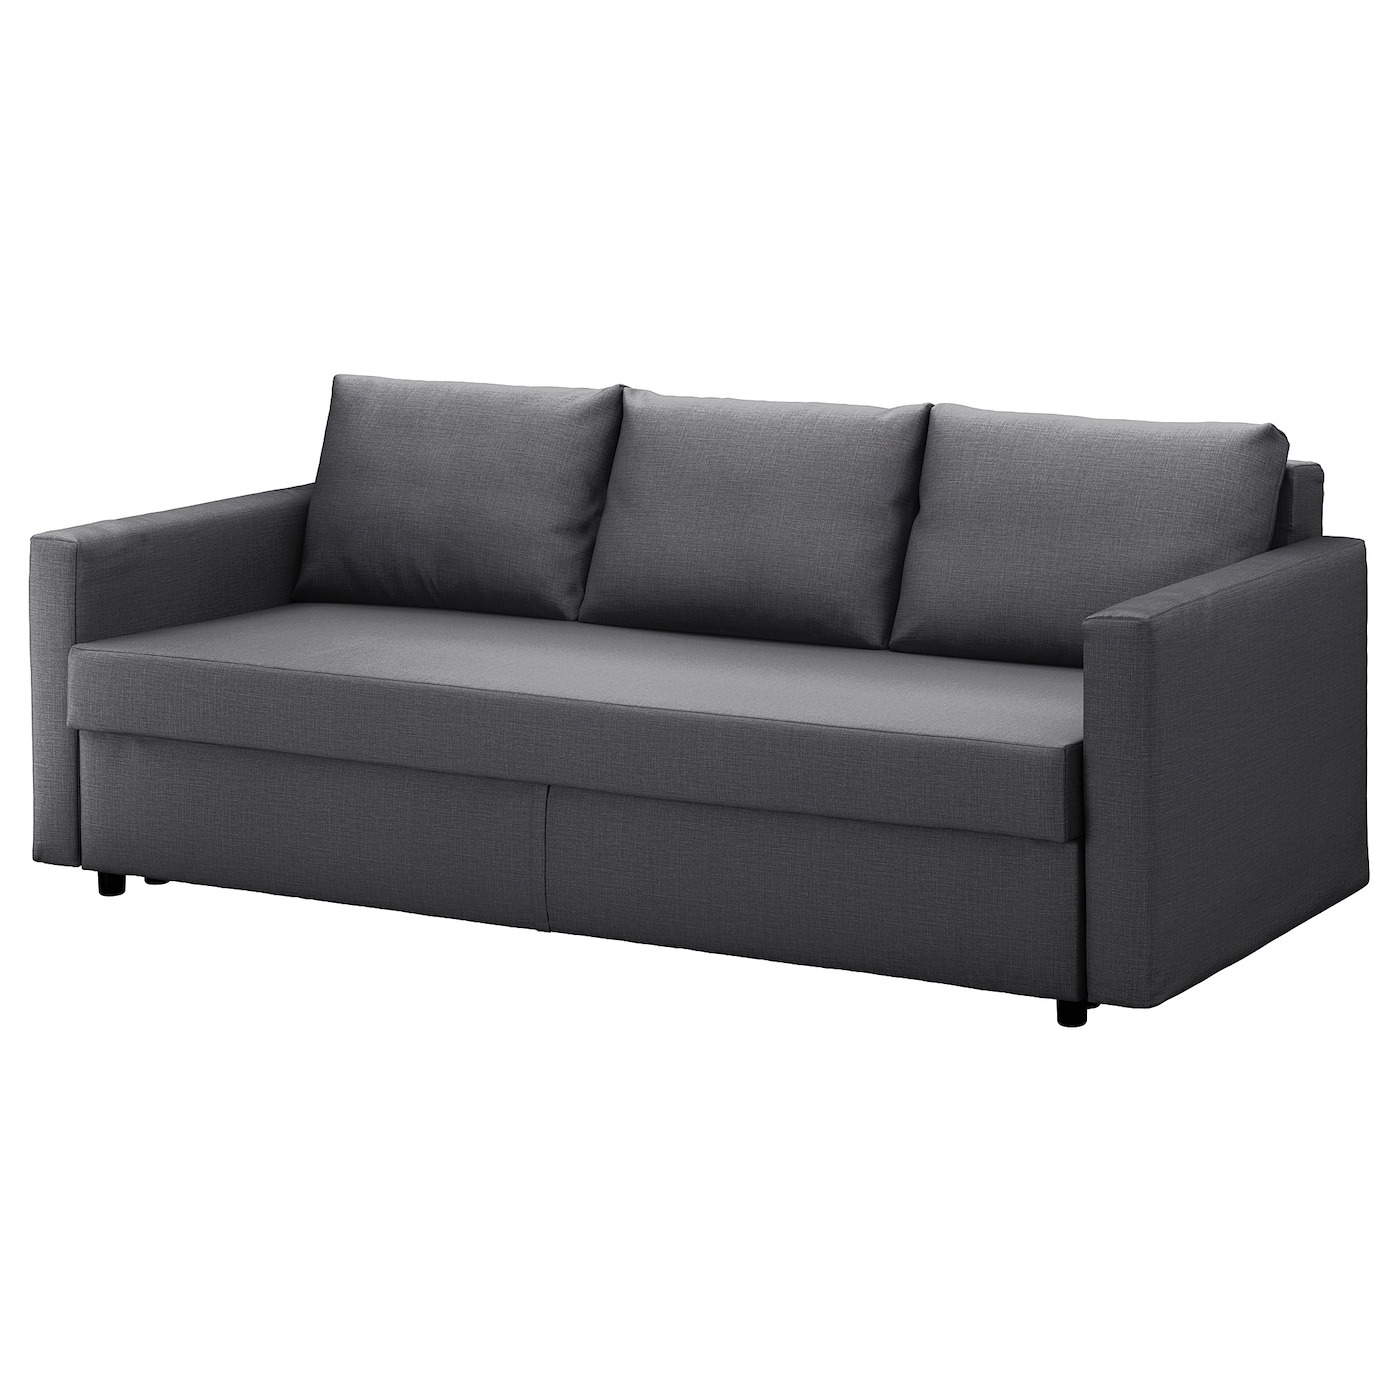 Sofa Bed Ikea Edinburgh